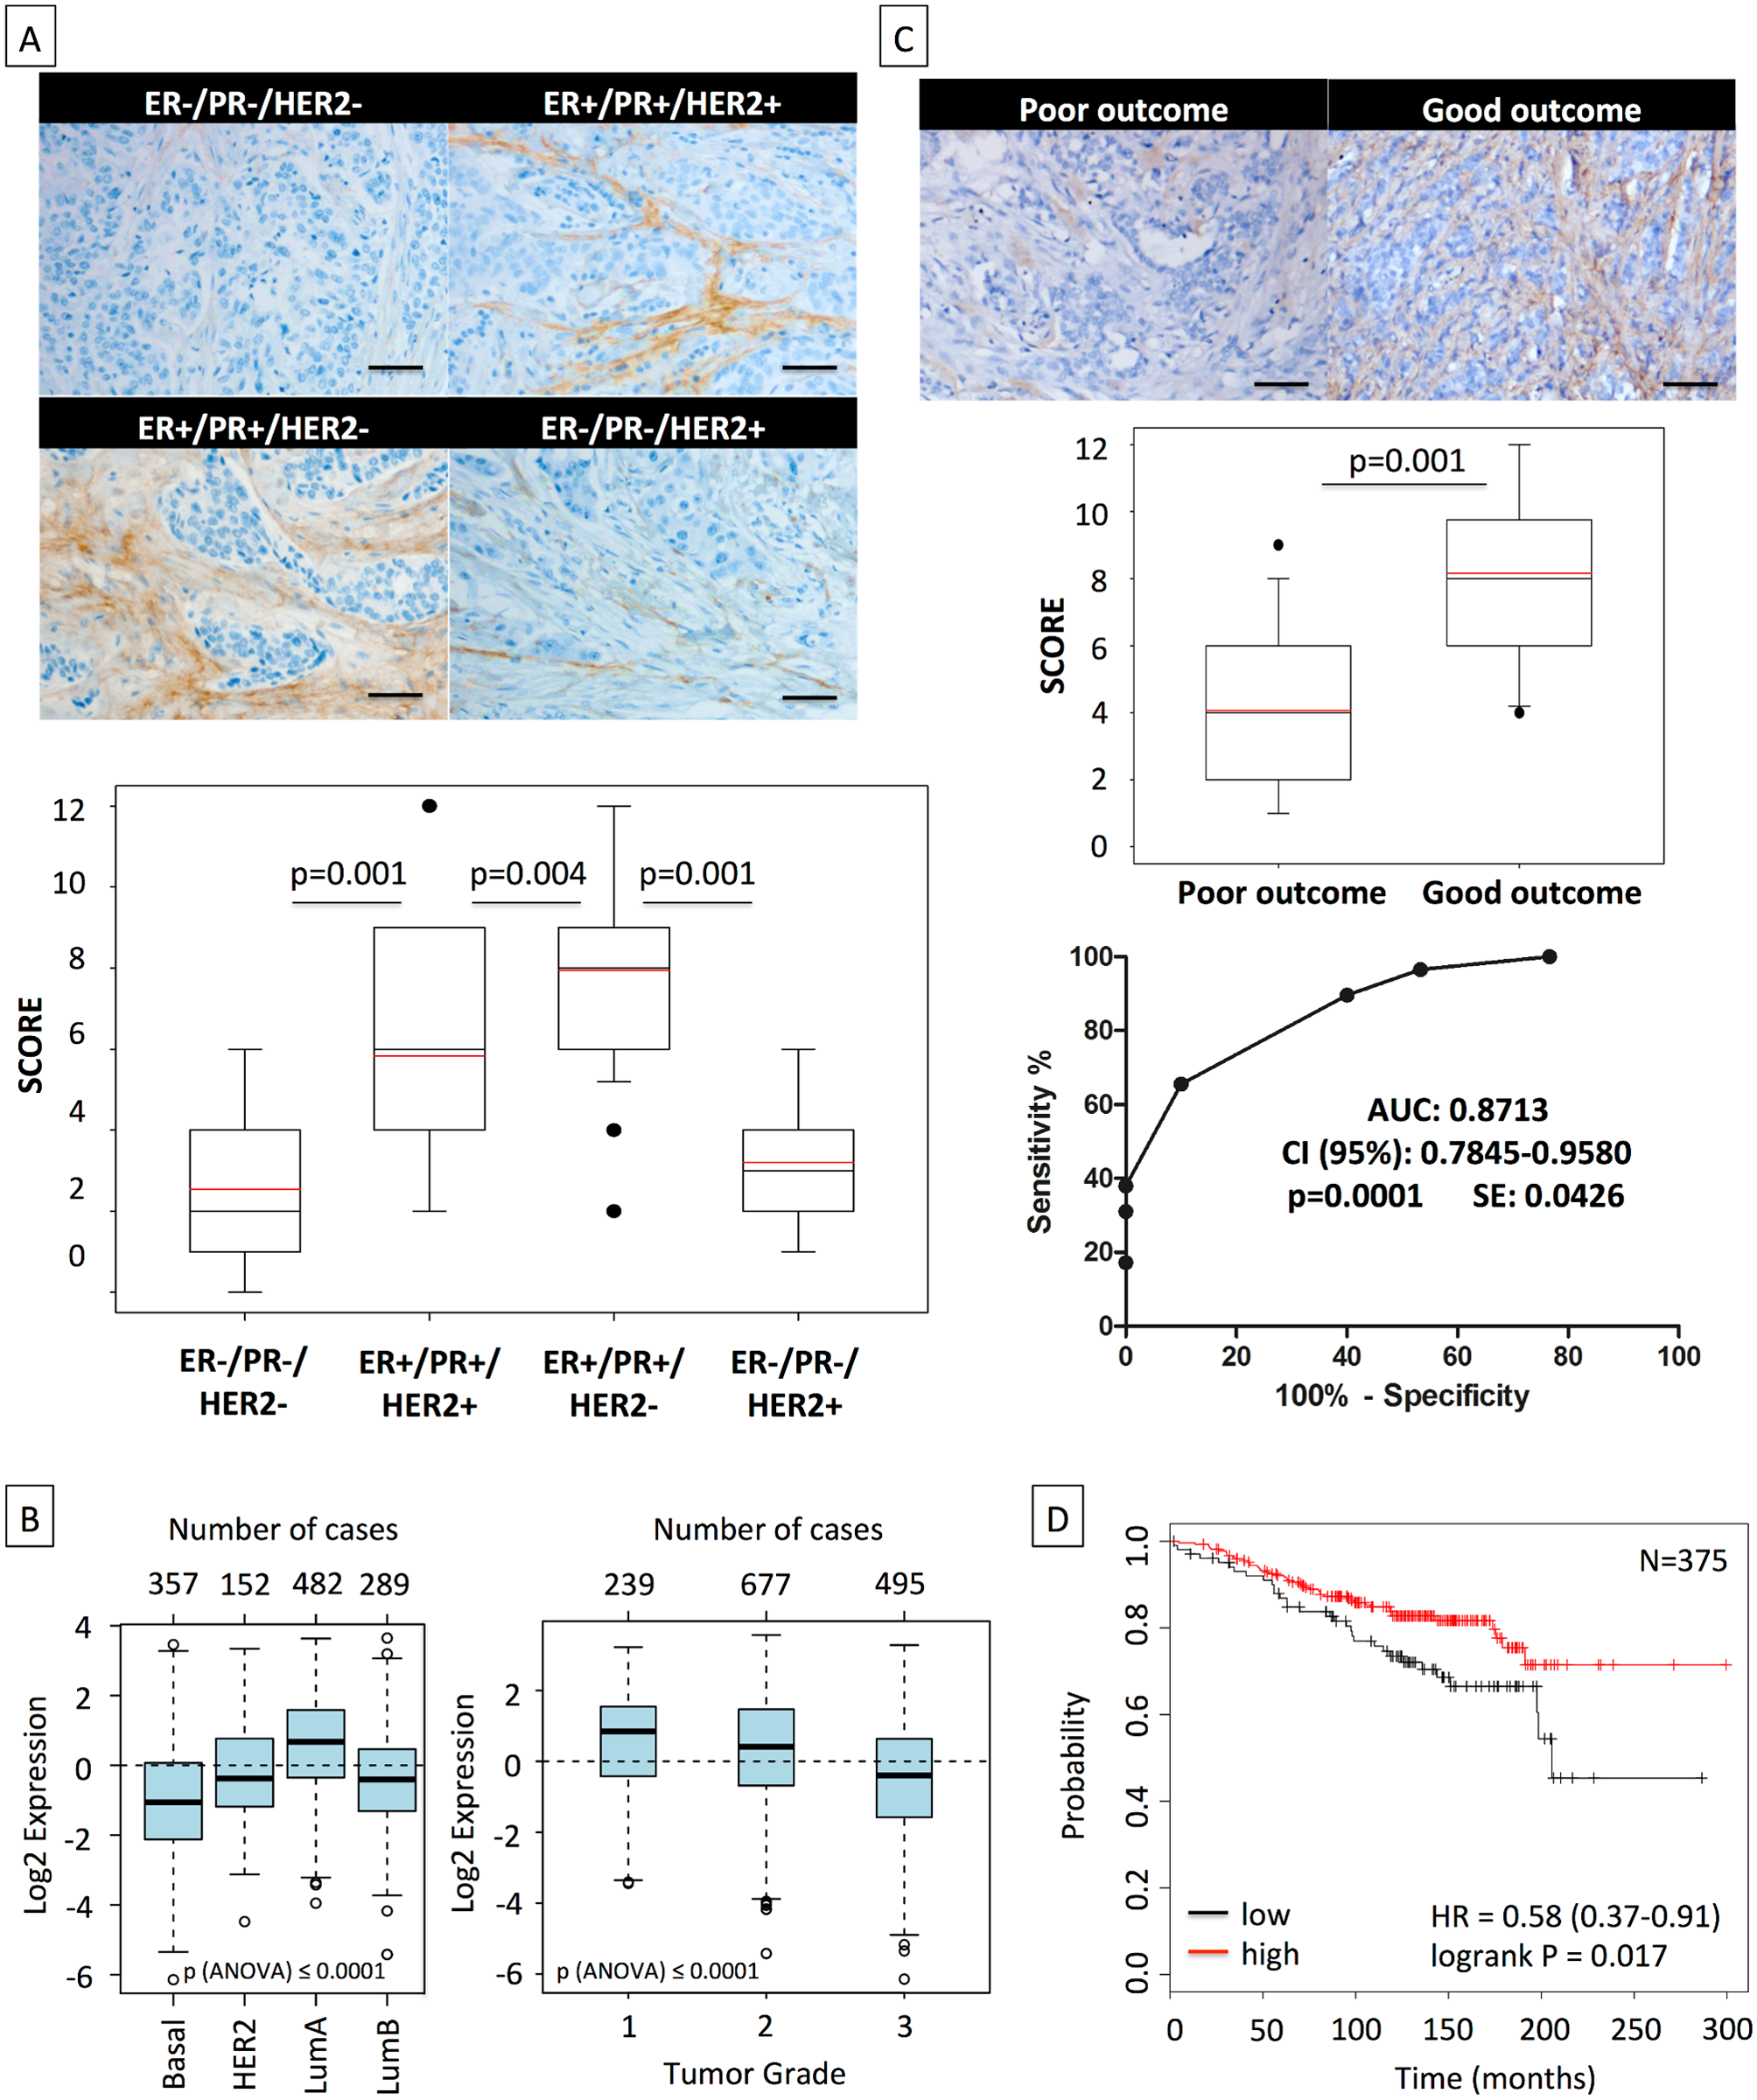 High asporin expression in human breast cancer matches with luminal-like tumor type and good patient outcome.